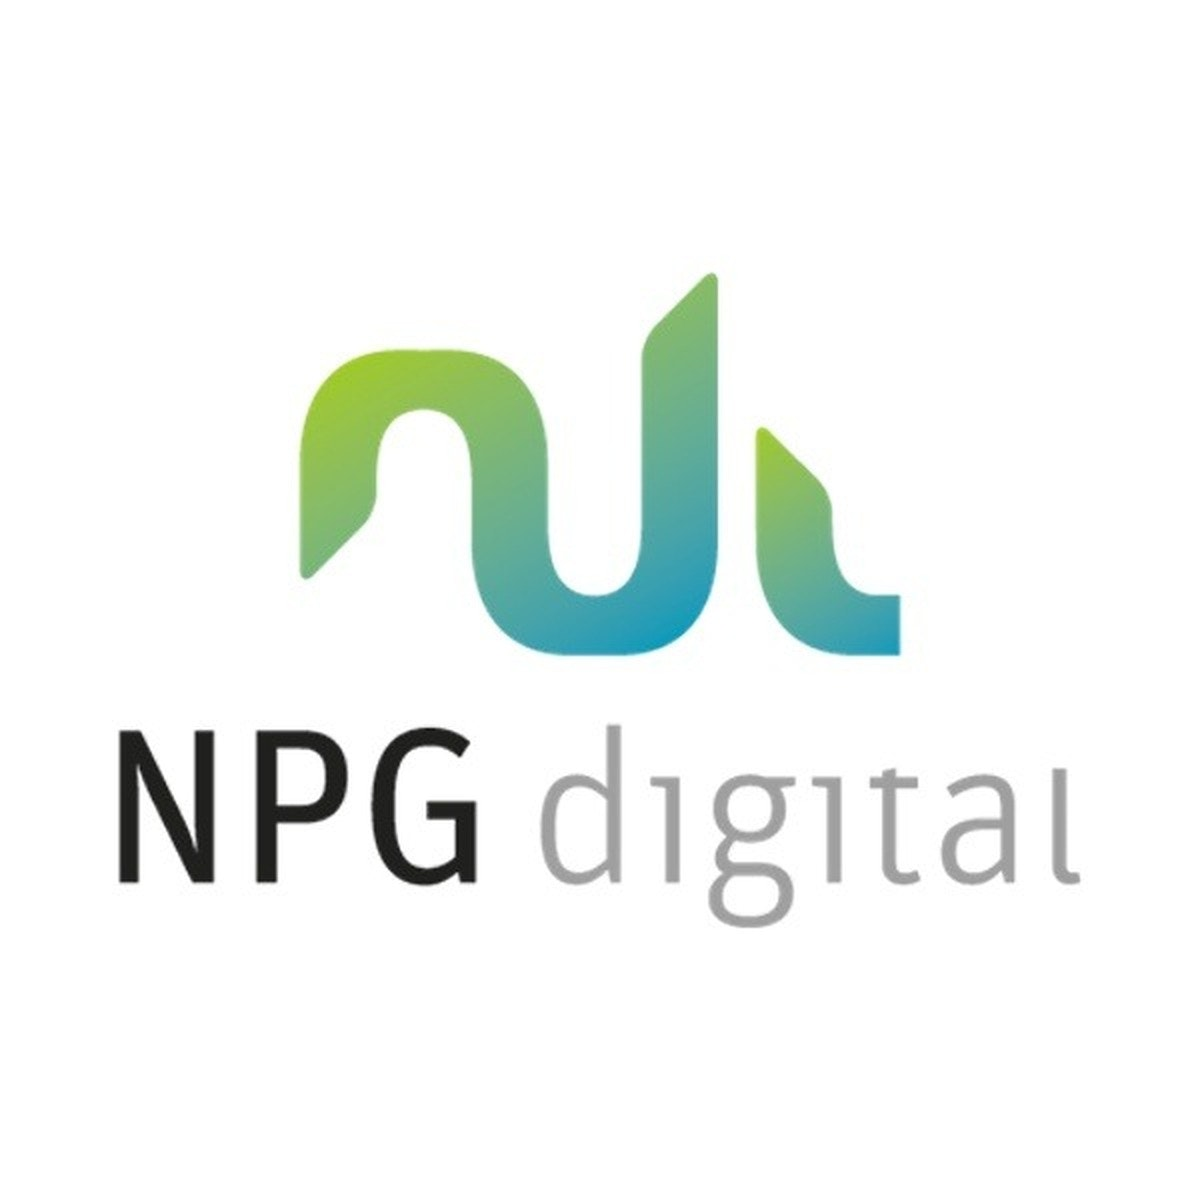 NPG Digital GmbH